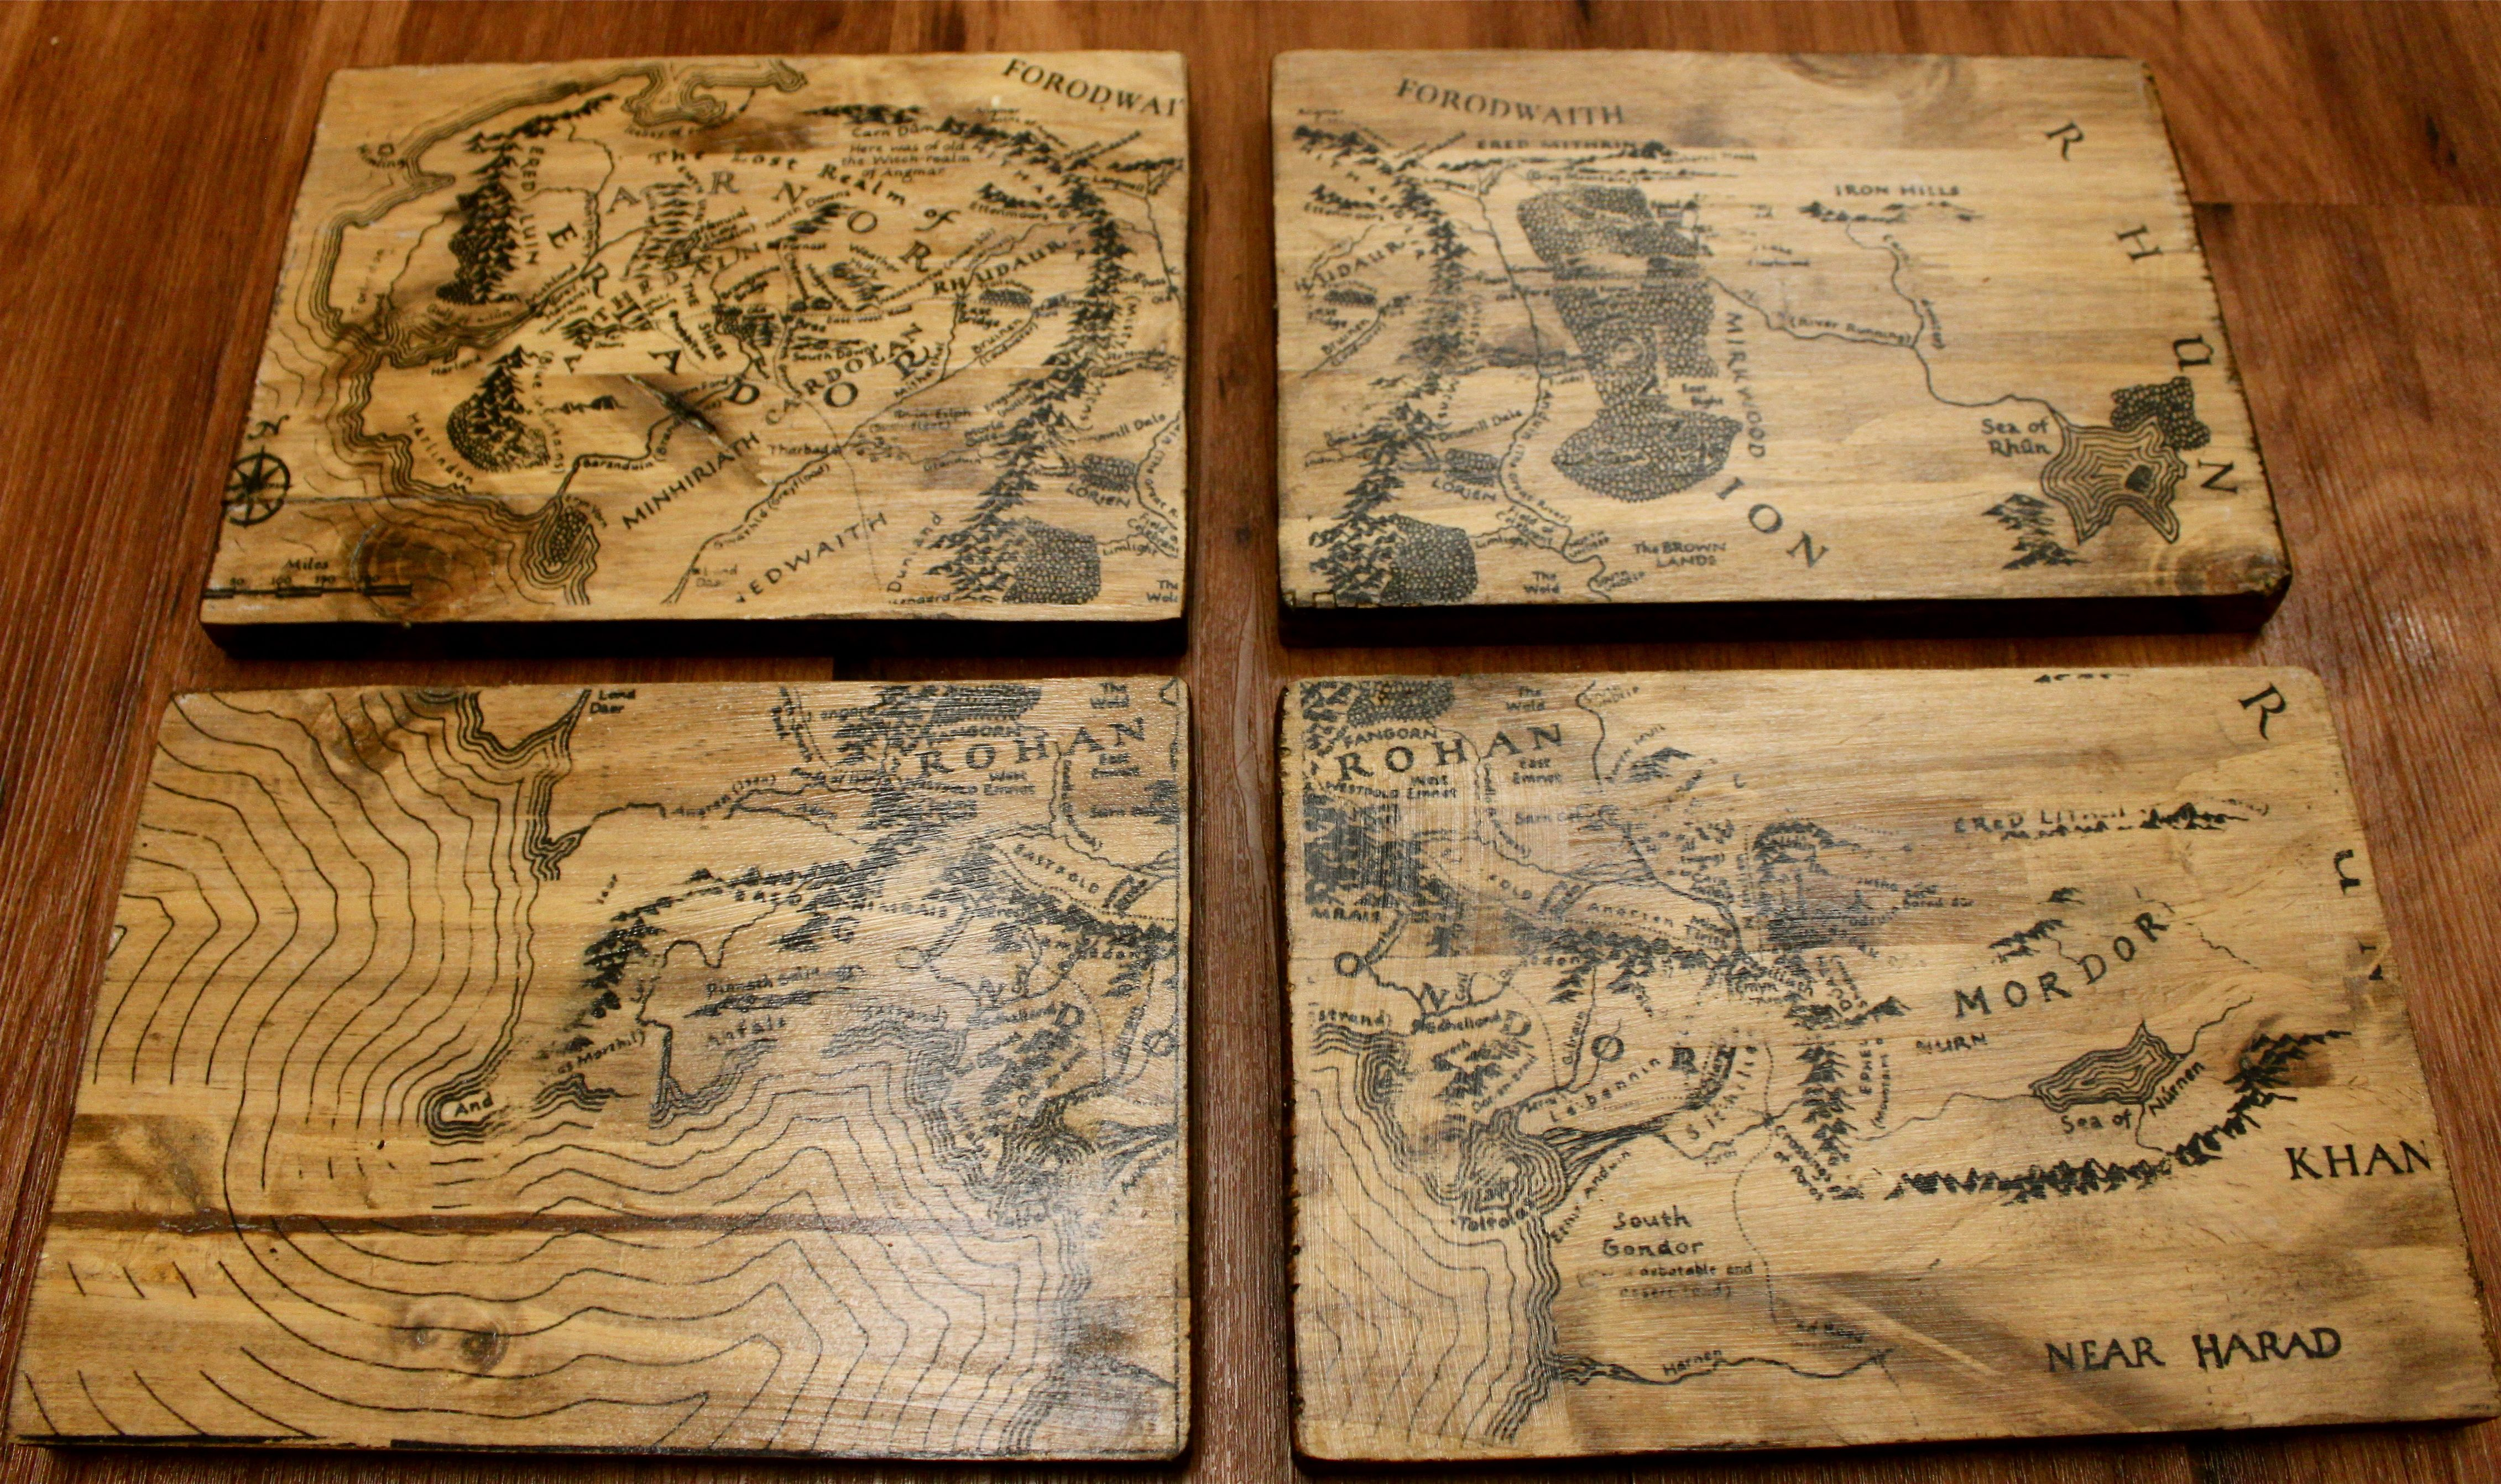 Lord of the Rings Map of Middle